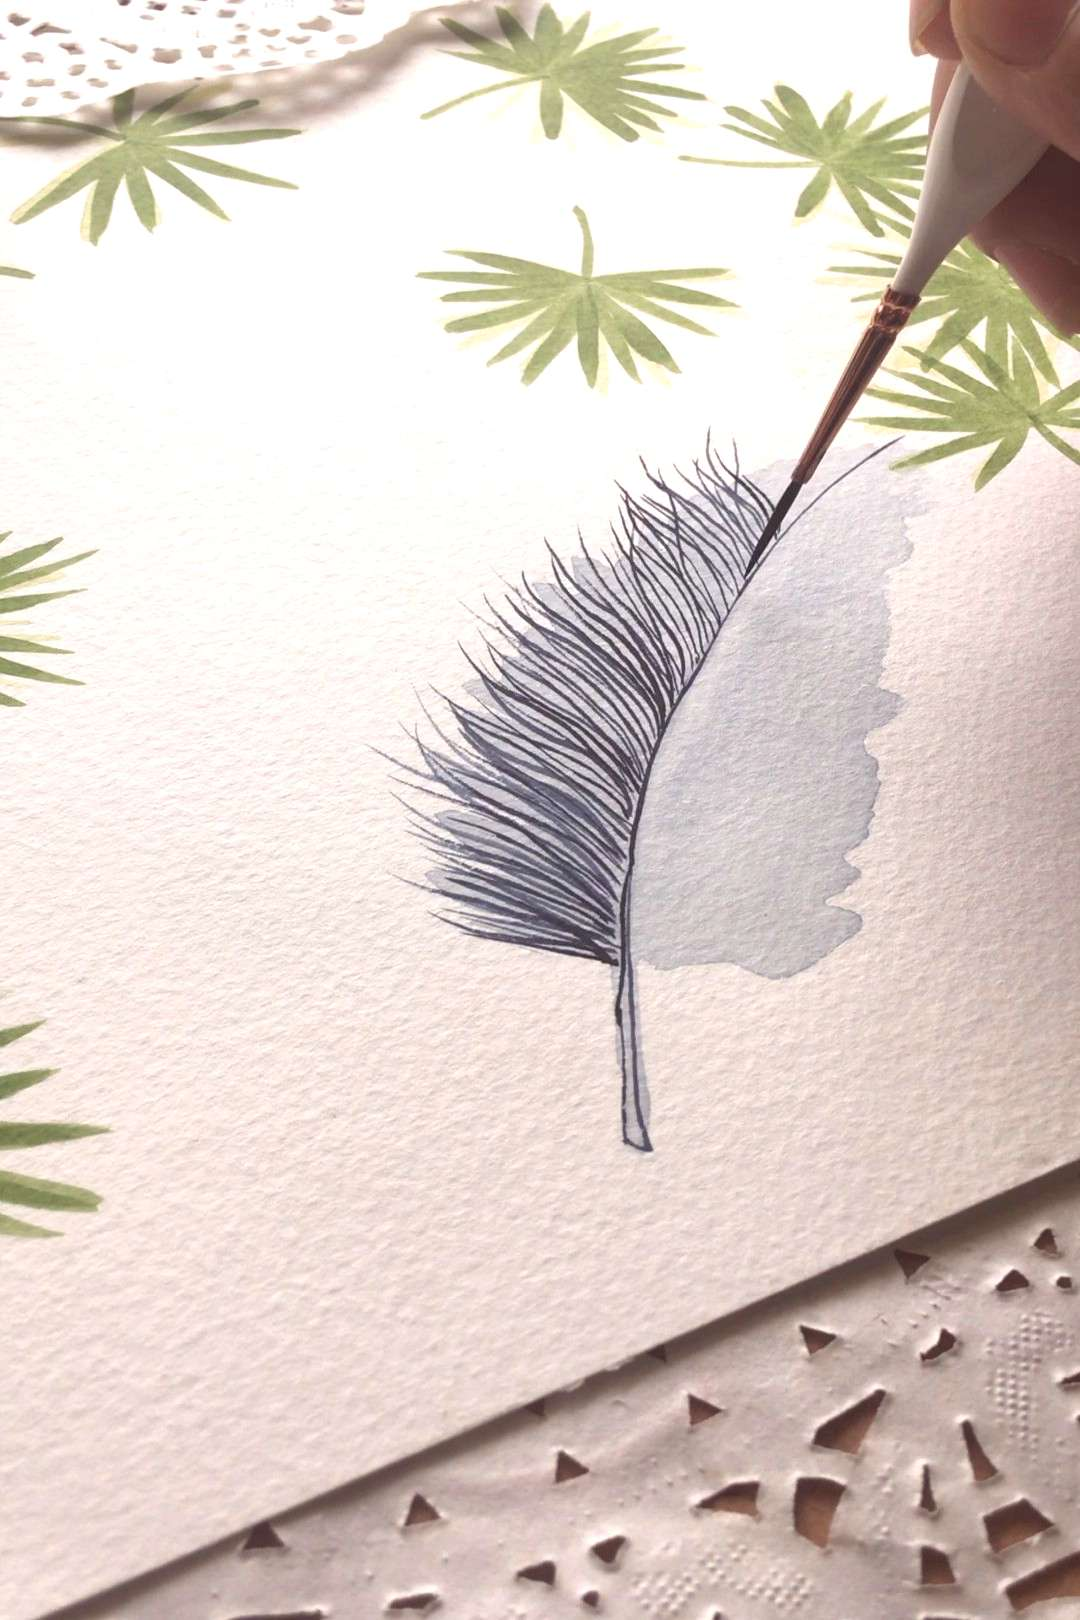 Feather painting This loose style feather painting is in watercolour. I used our handmade Indian in